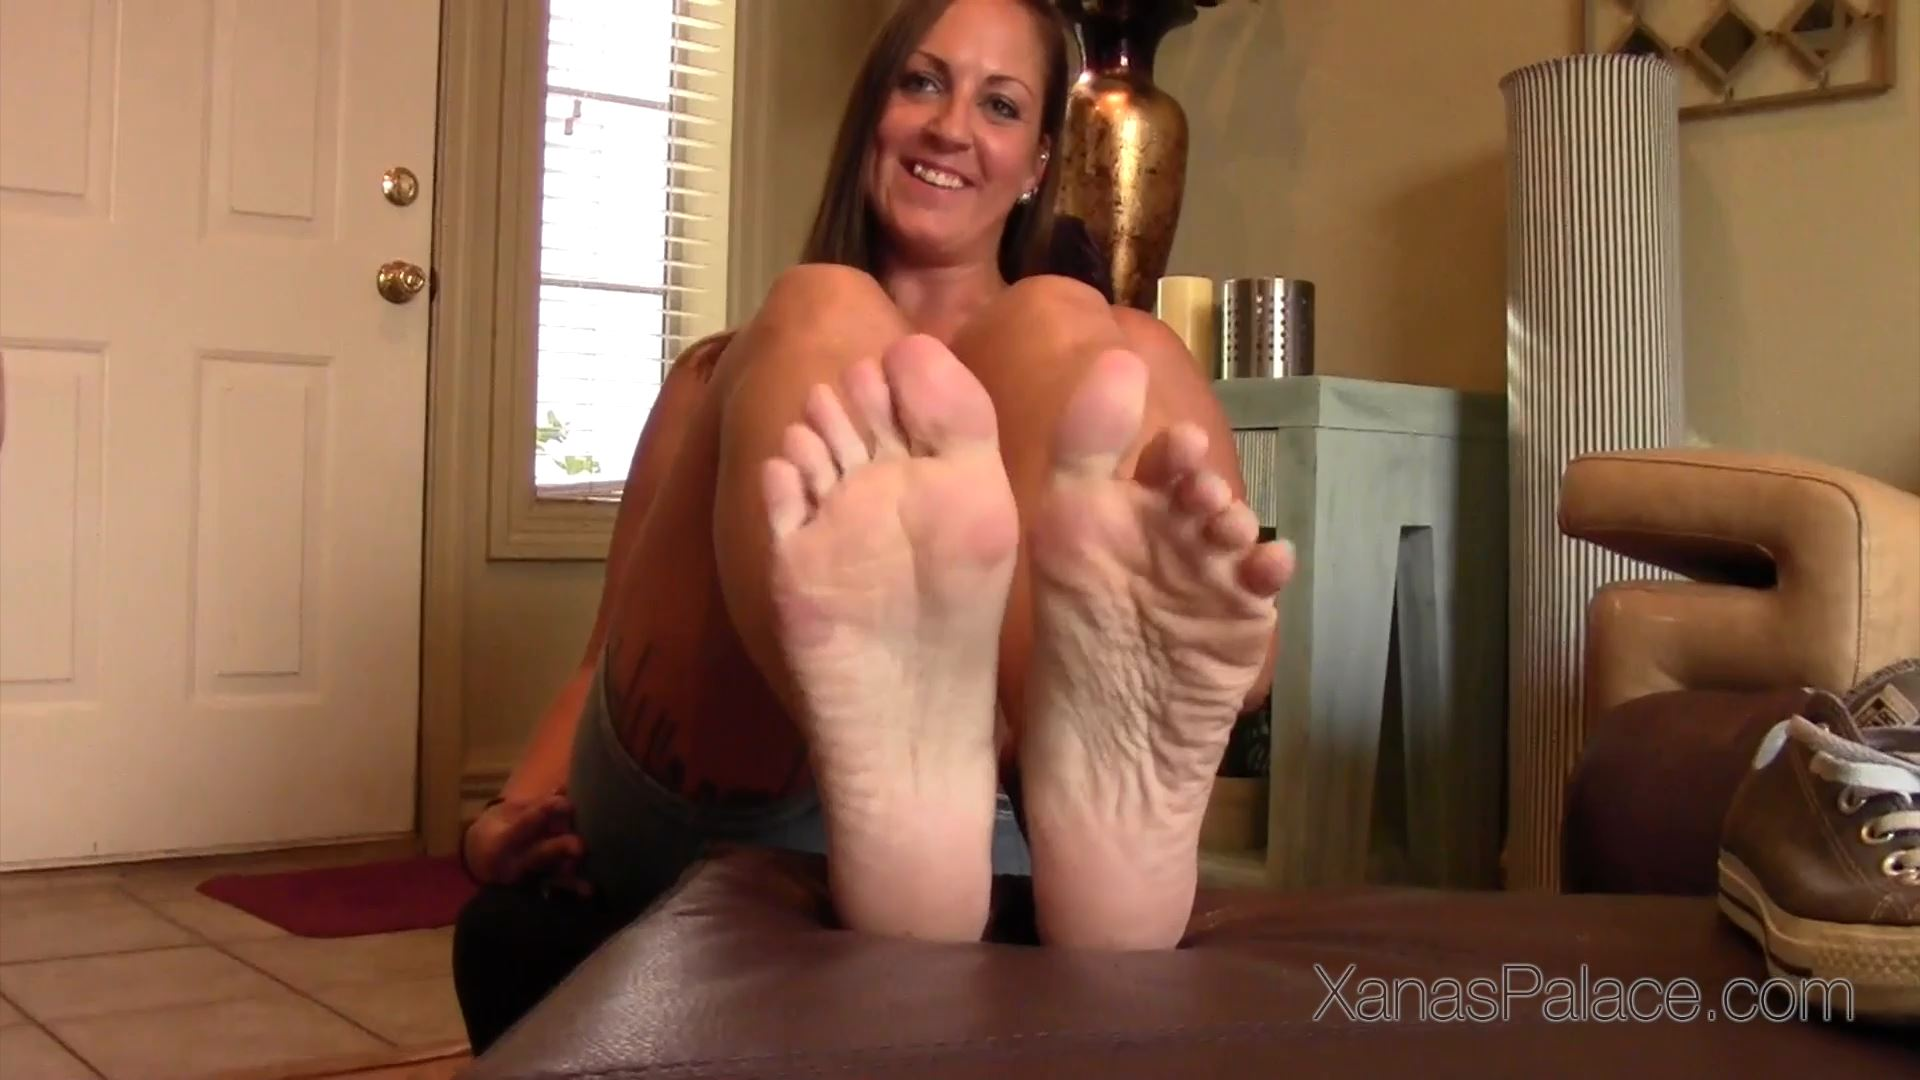 Julia In Scene: Julia Removes Her Sweaty Chucks - XANASPALACE - FULL HD/1080p/MP4